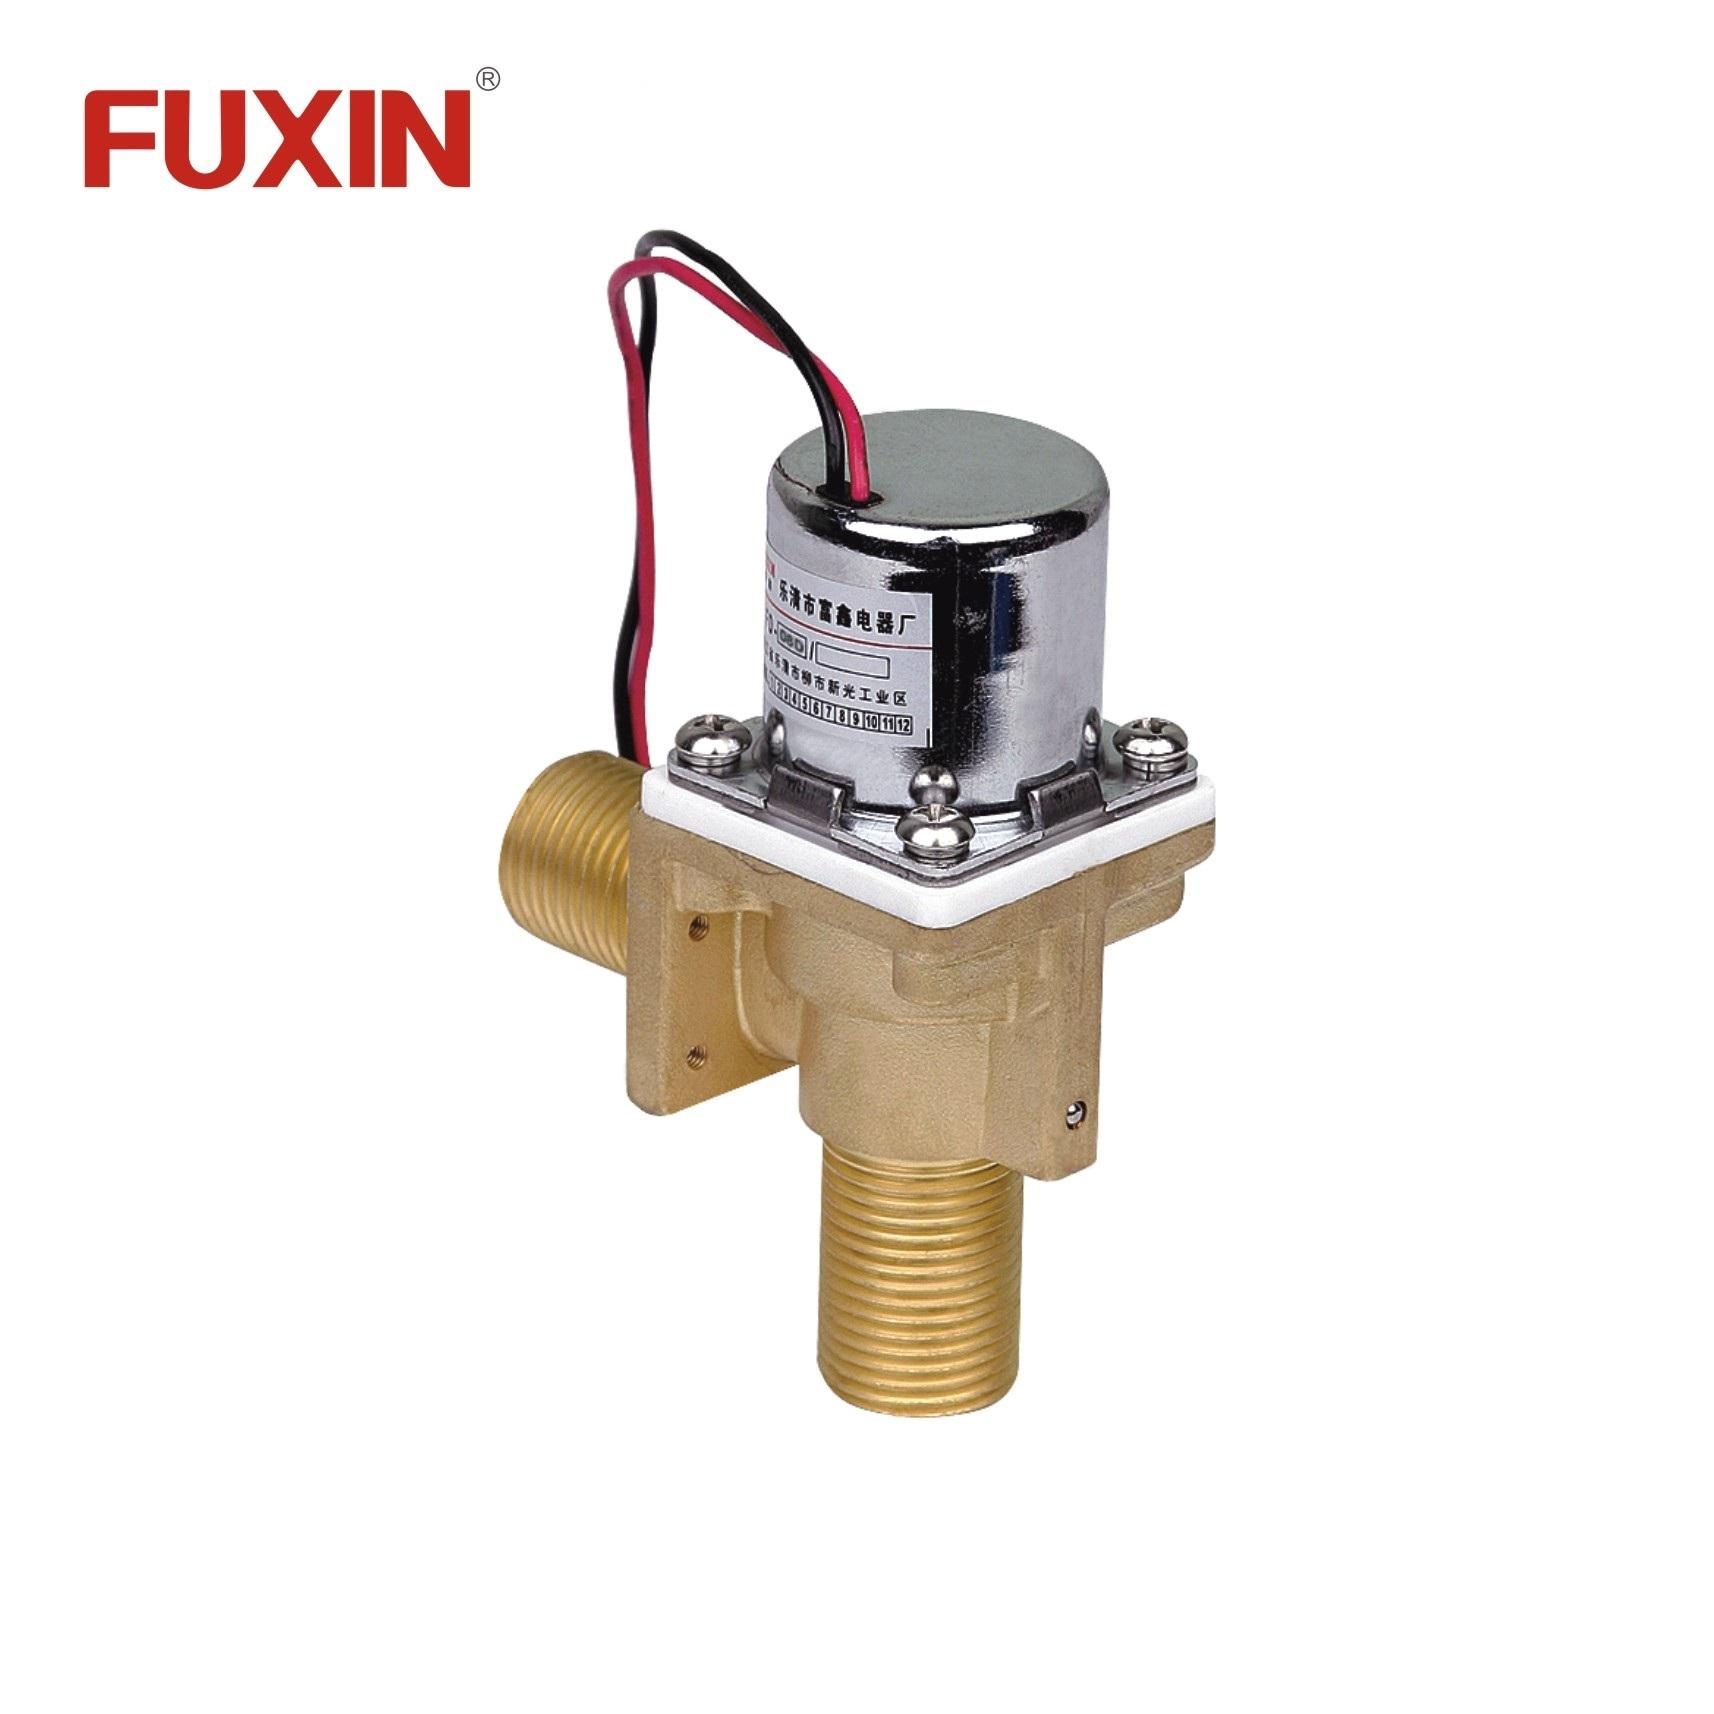 90 degree brass solenoid valve 12v 1/2 inch electric water valve actuator